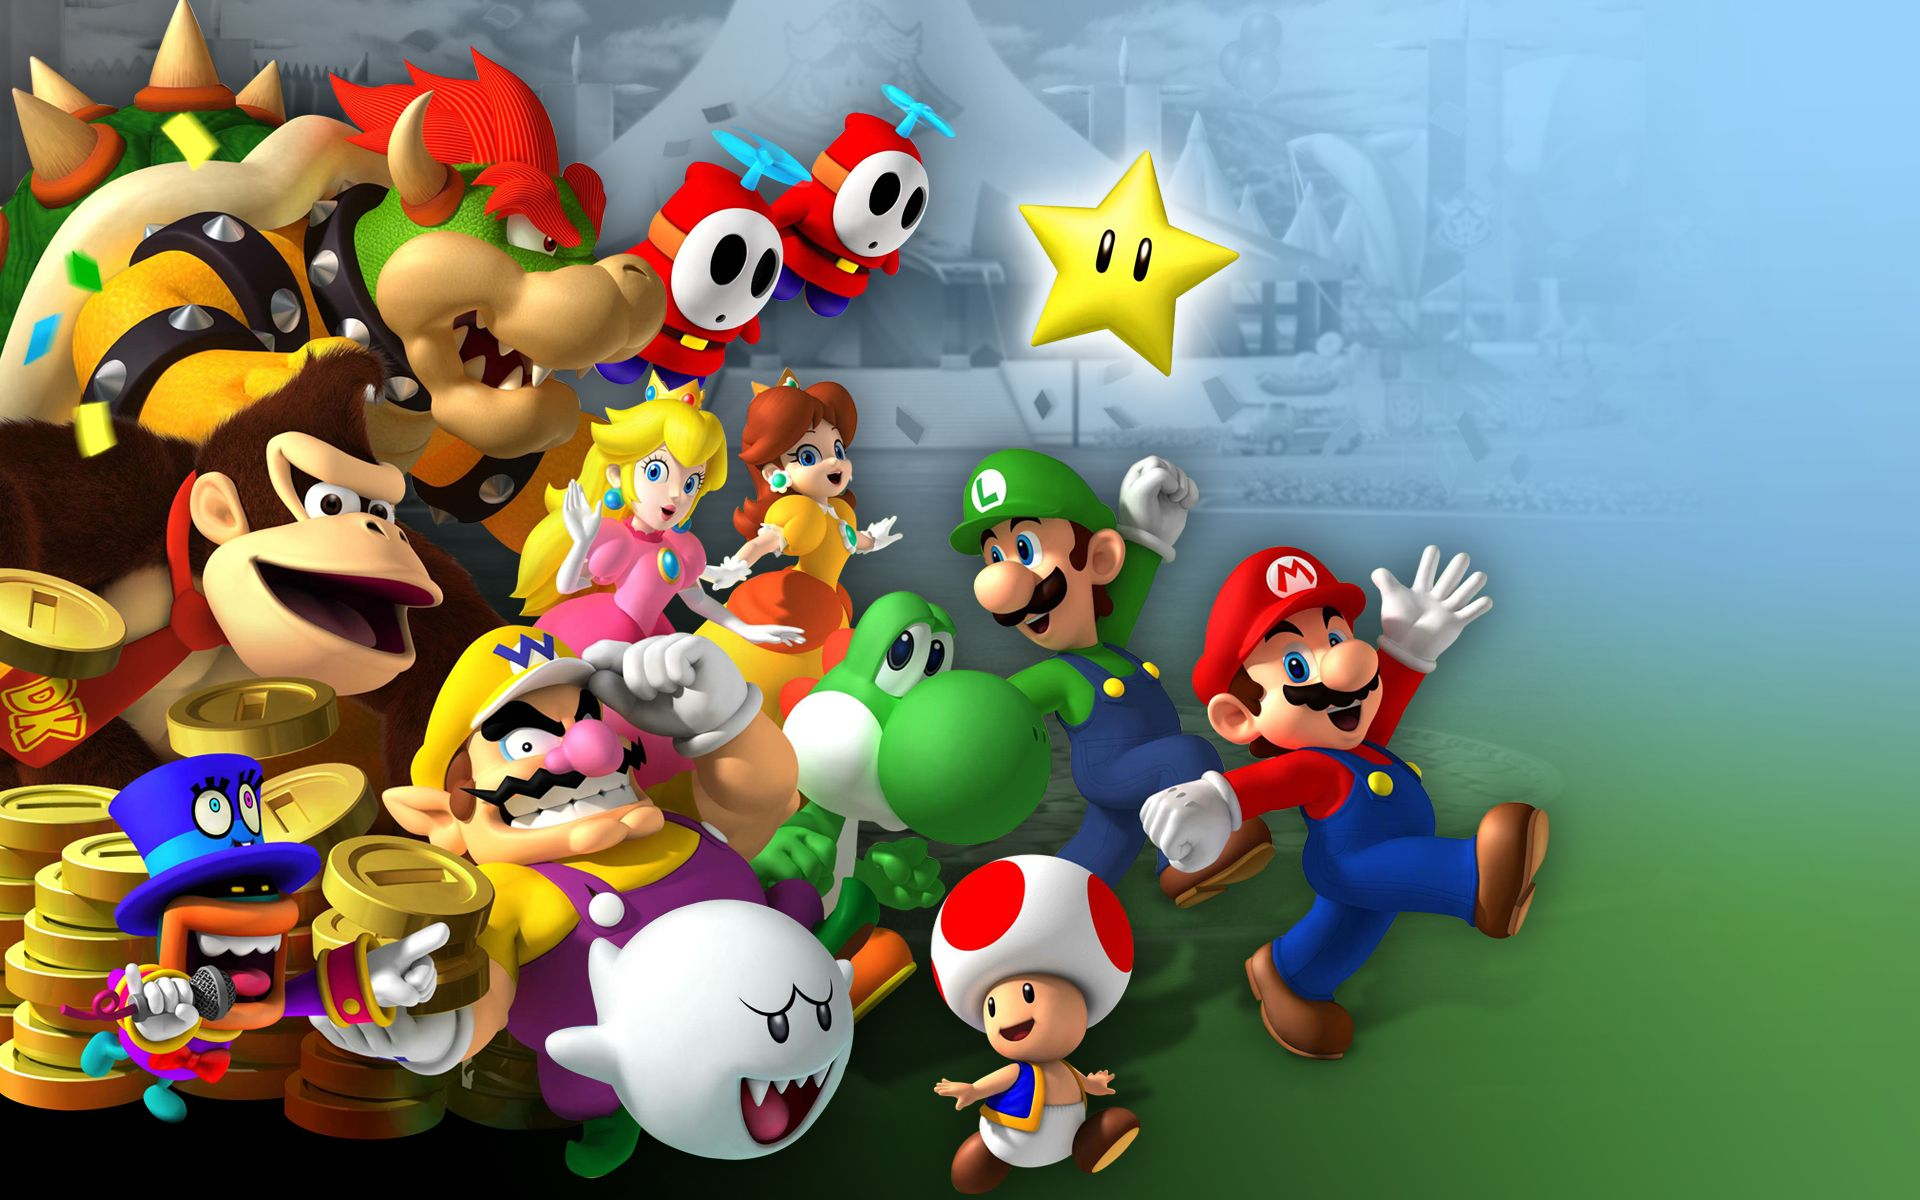 omg look at this picture it's super cool i lovvvve mario bros. they